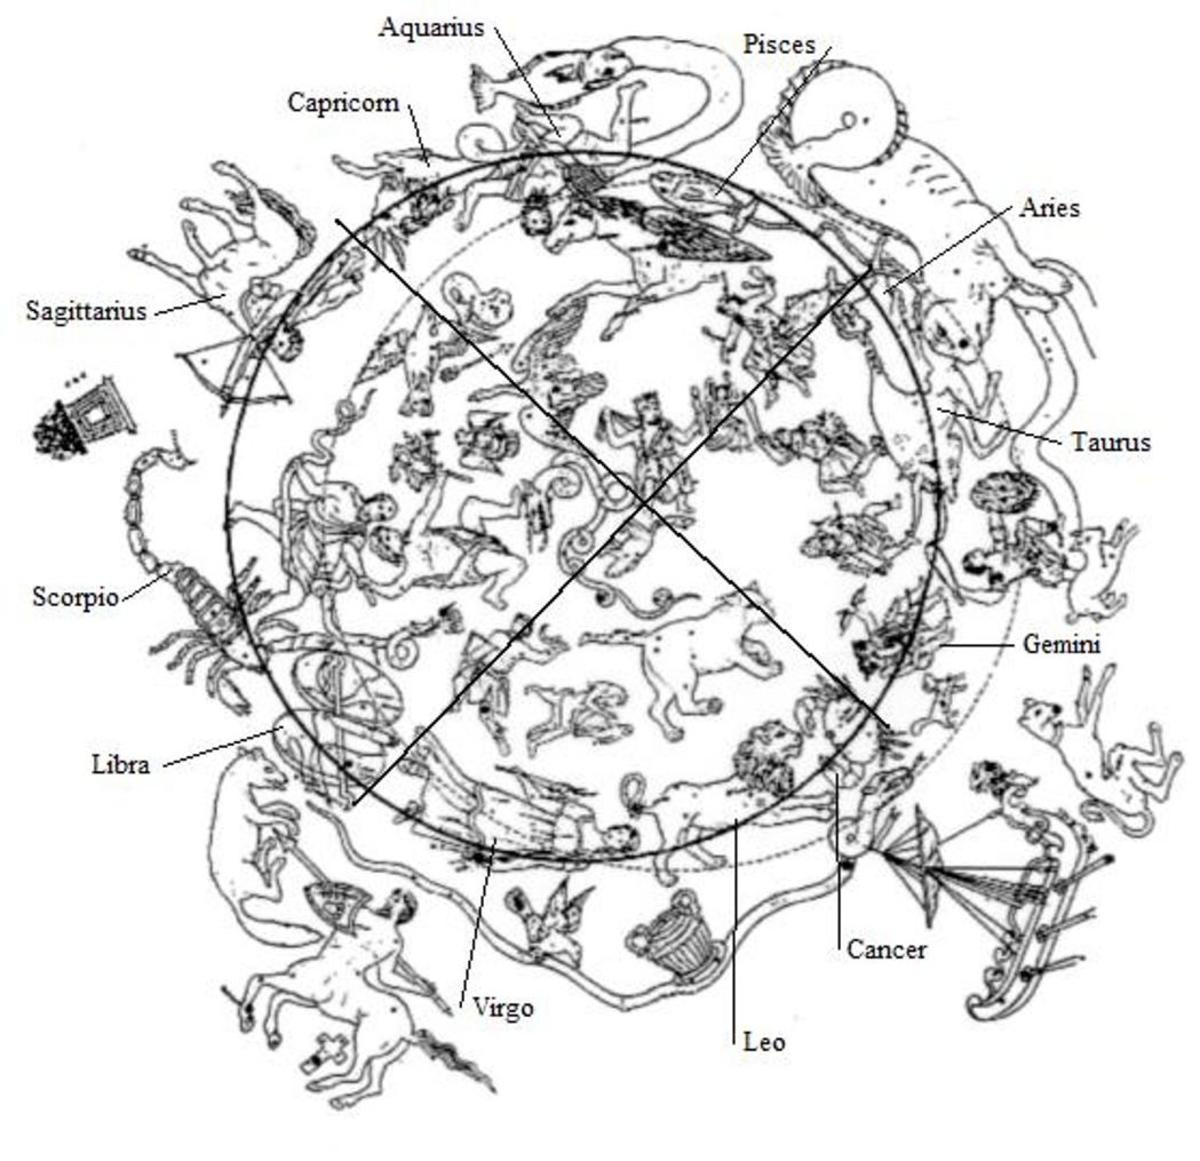 Drawing of Albumazer's Zodiac divided into the Four Seasons.